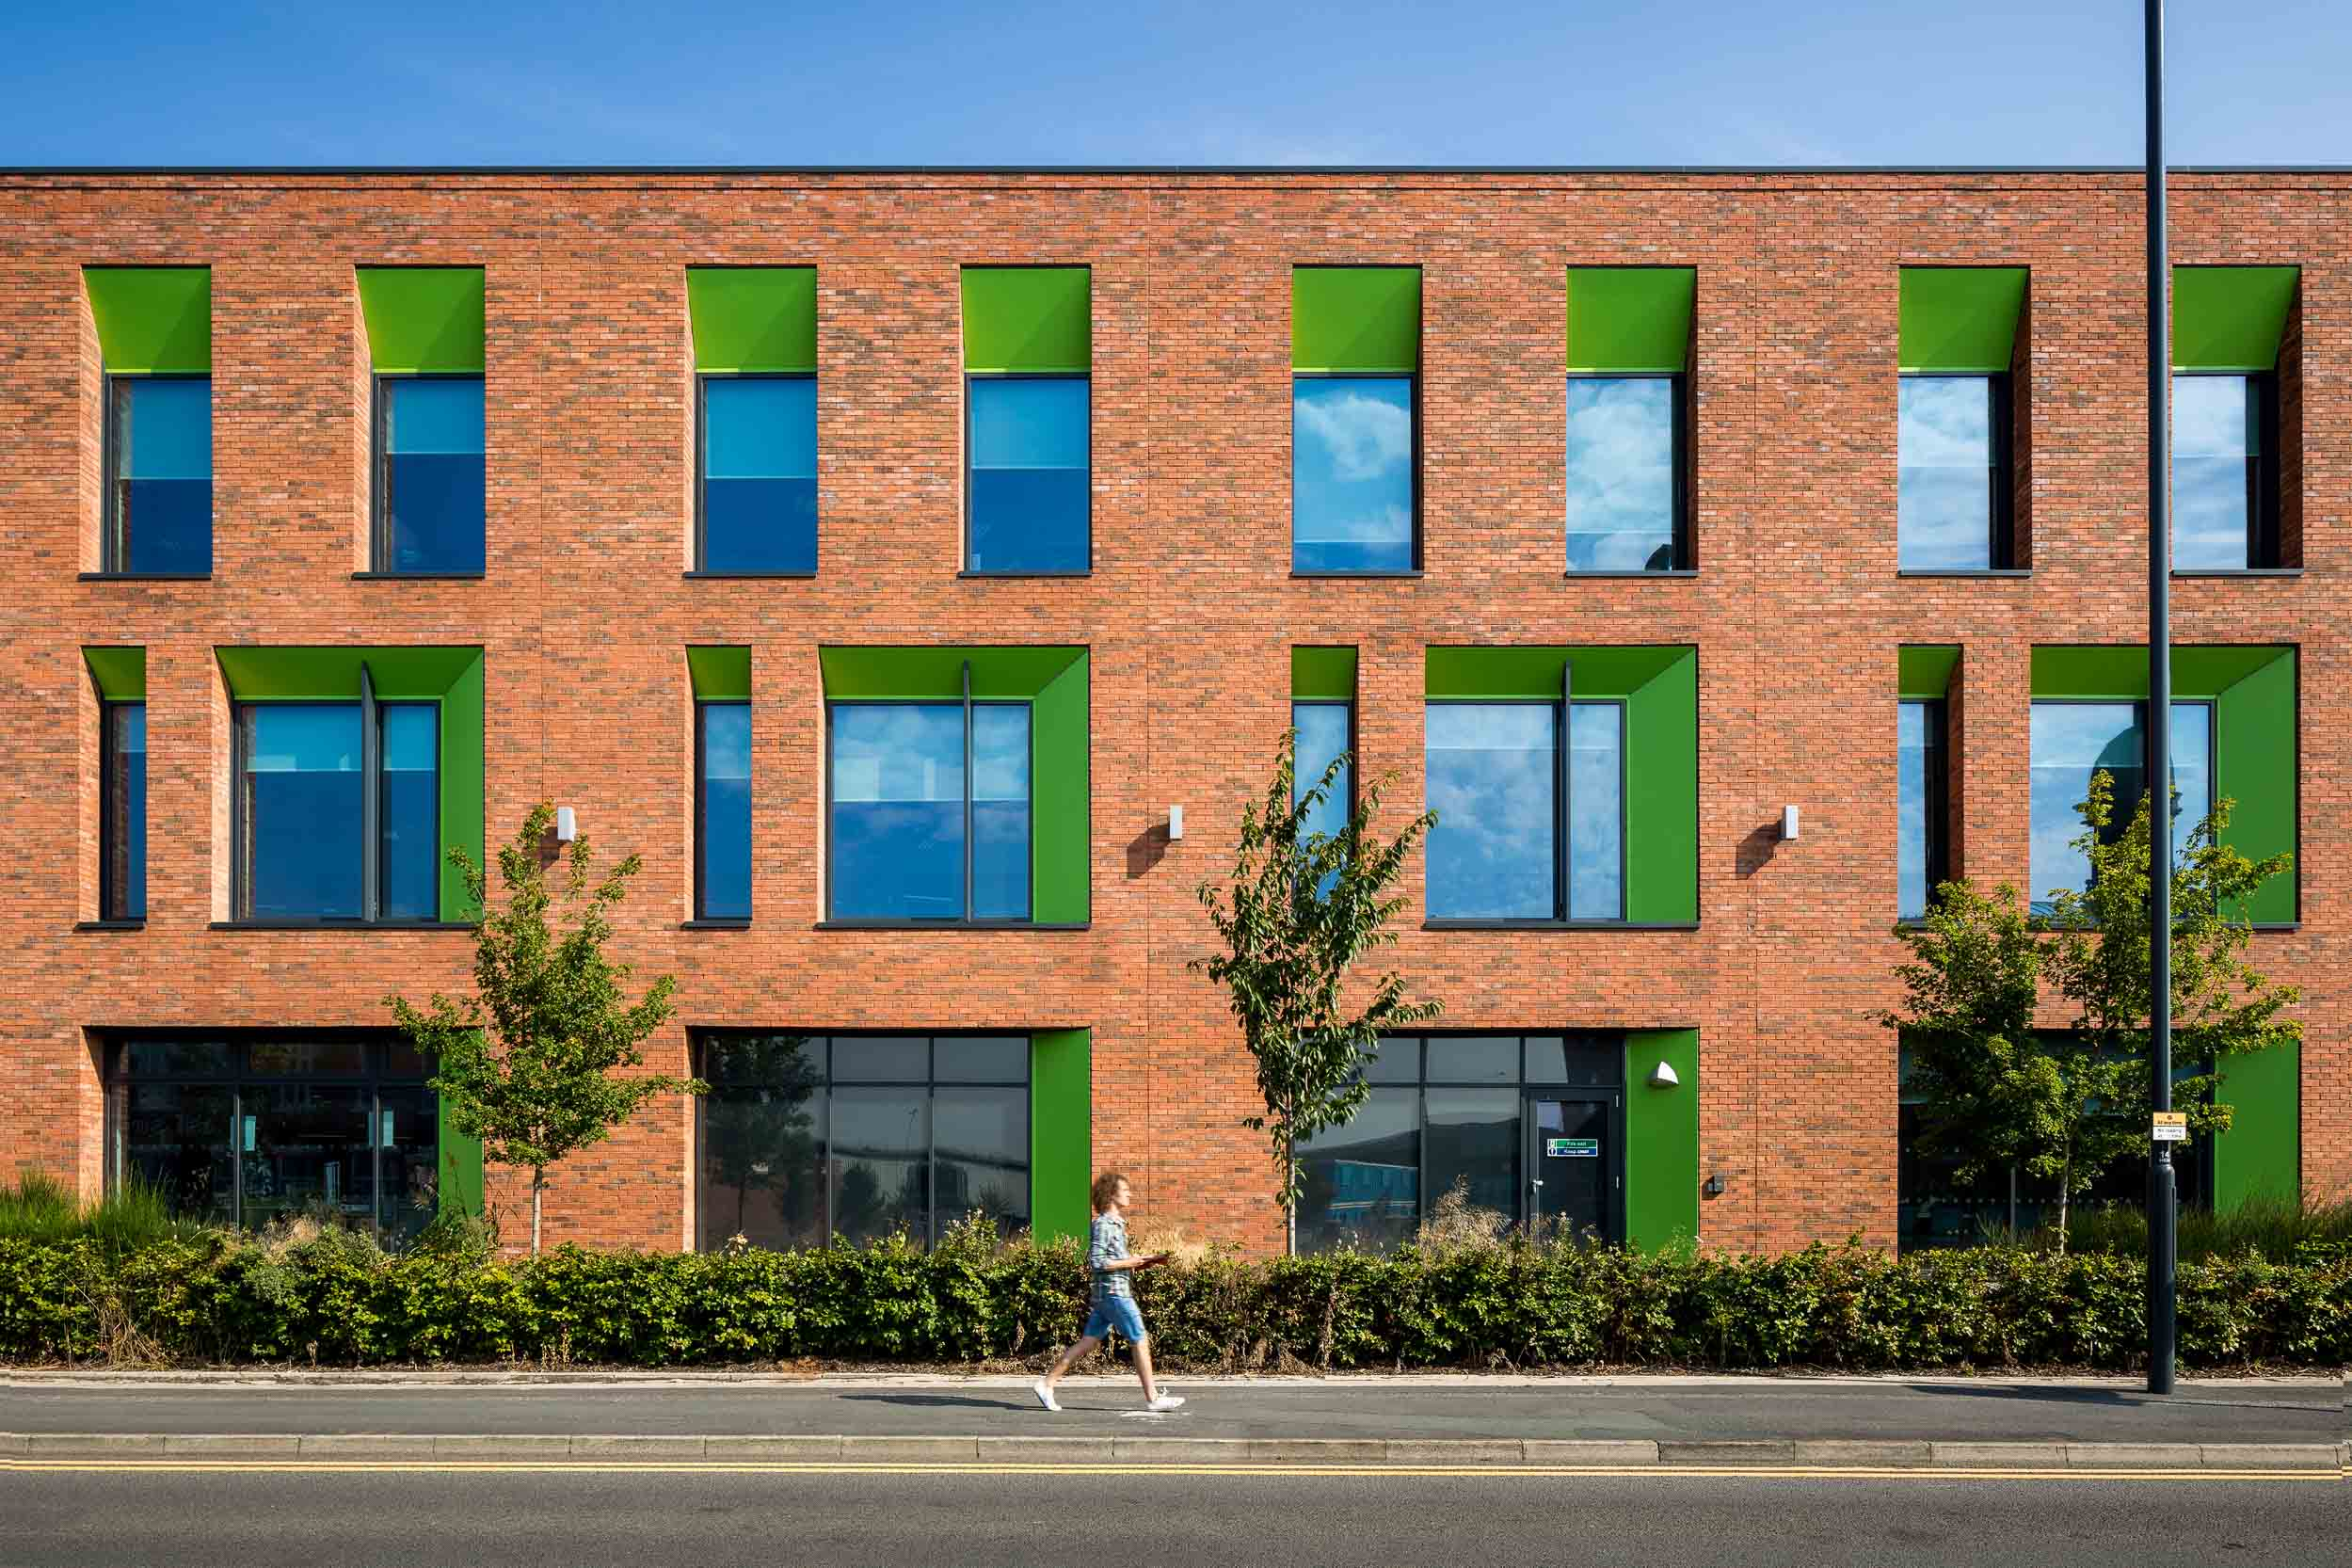 leeds college of building exterior architectural education.jpg